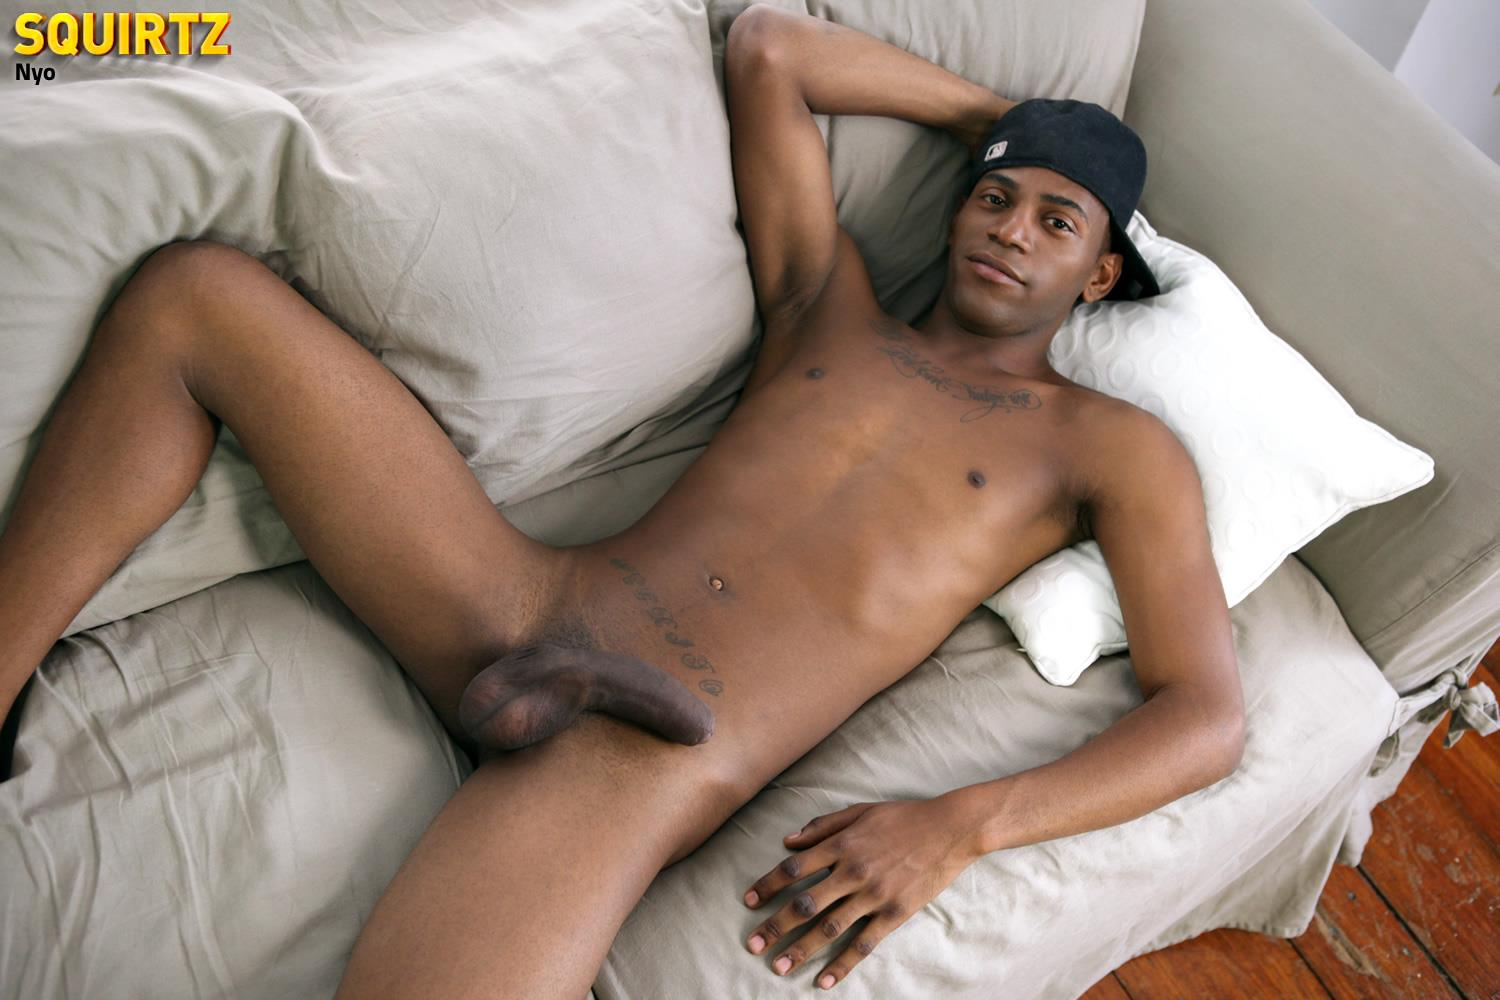 big black monster gay dick Mar 2017  COM FOR THOUSANDS OF VIDEOS OF THE FINEST CHOCOLATE FREAKS # BLACK DICK #BLACK GAY PORN #GAY PORN #GAY MEN .